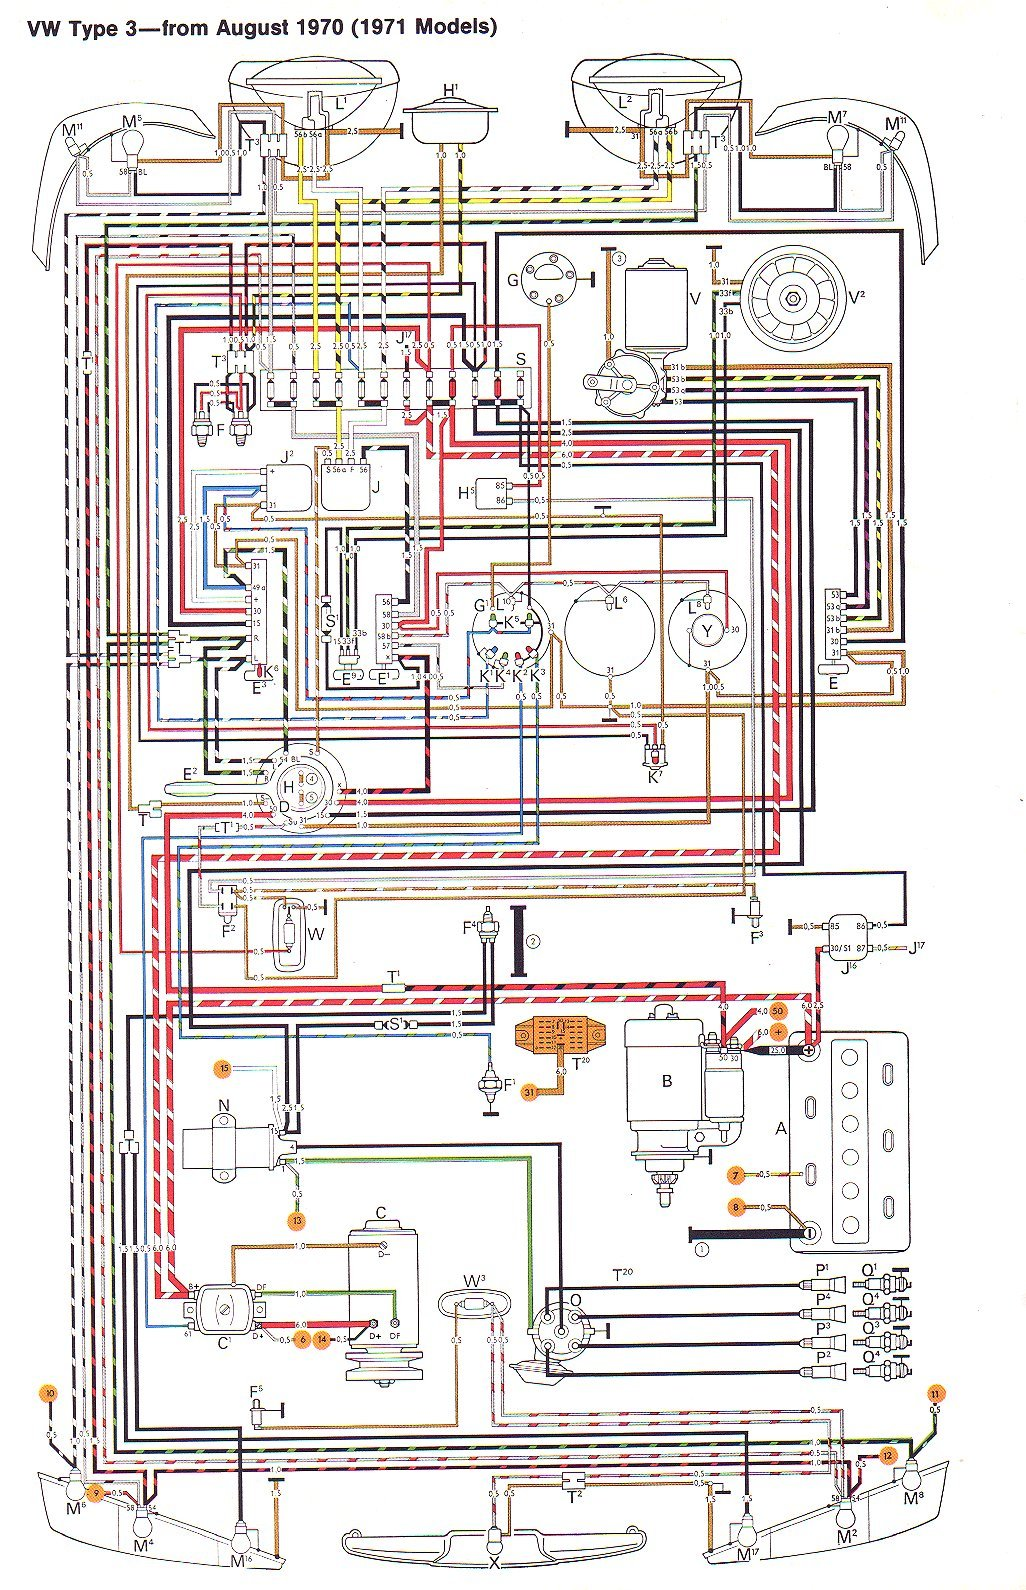 Vw Type 3 Wiring Diagram Free For You 71 Mustang Dash Diagrams Rh Hallvw Clara Net Volkswagen 1971